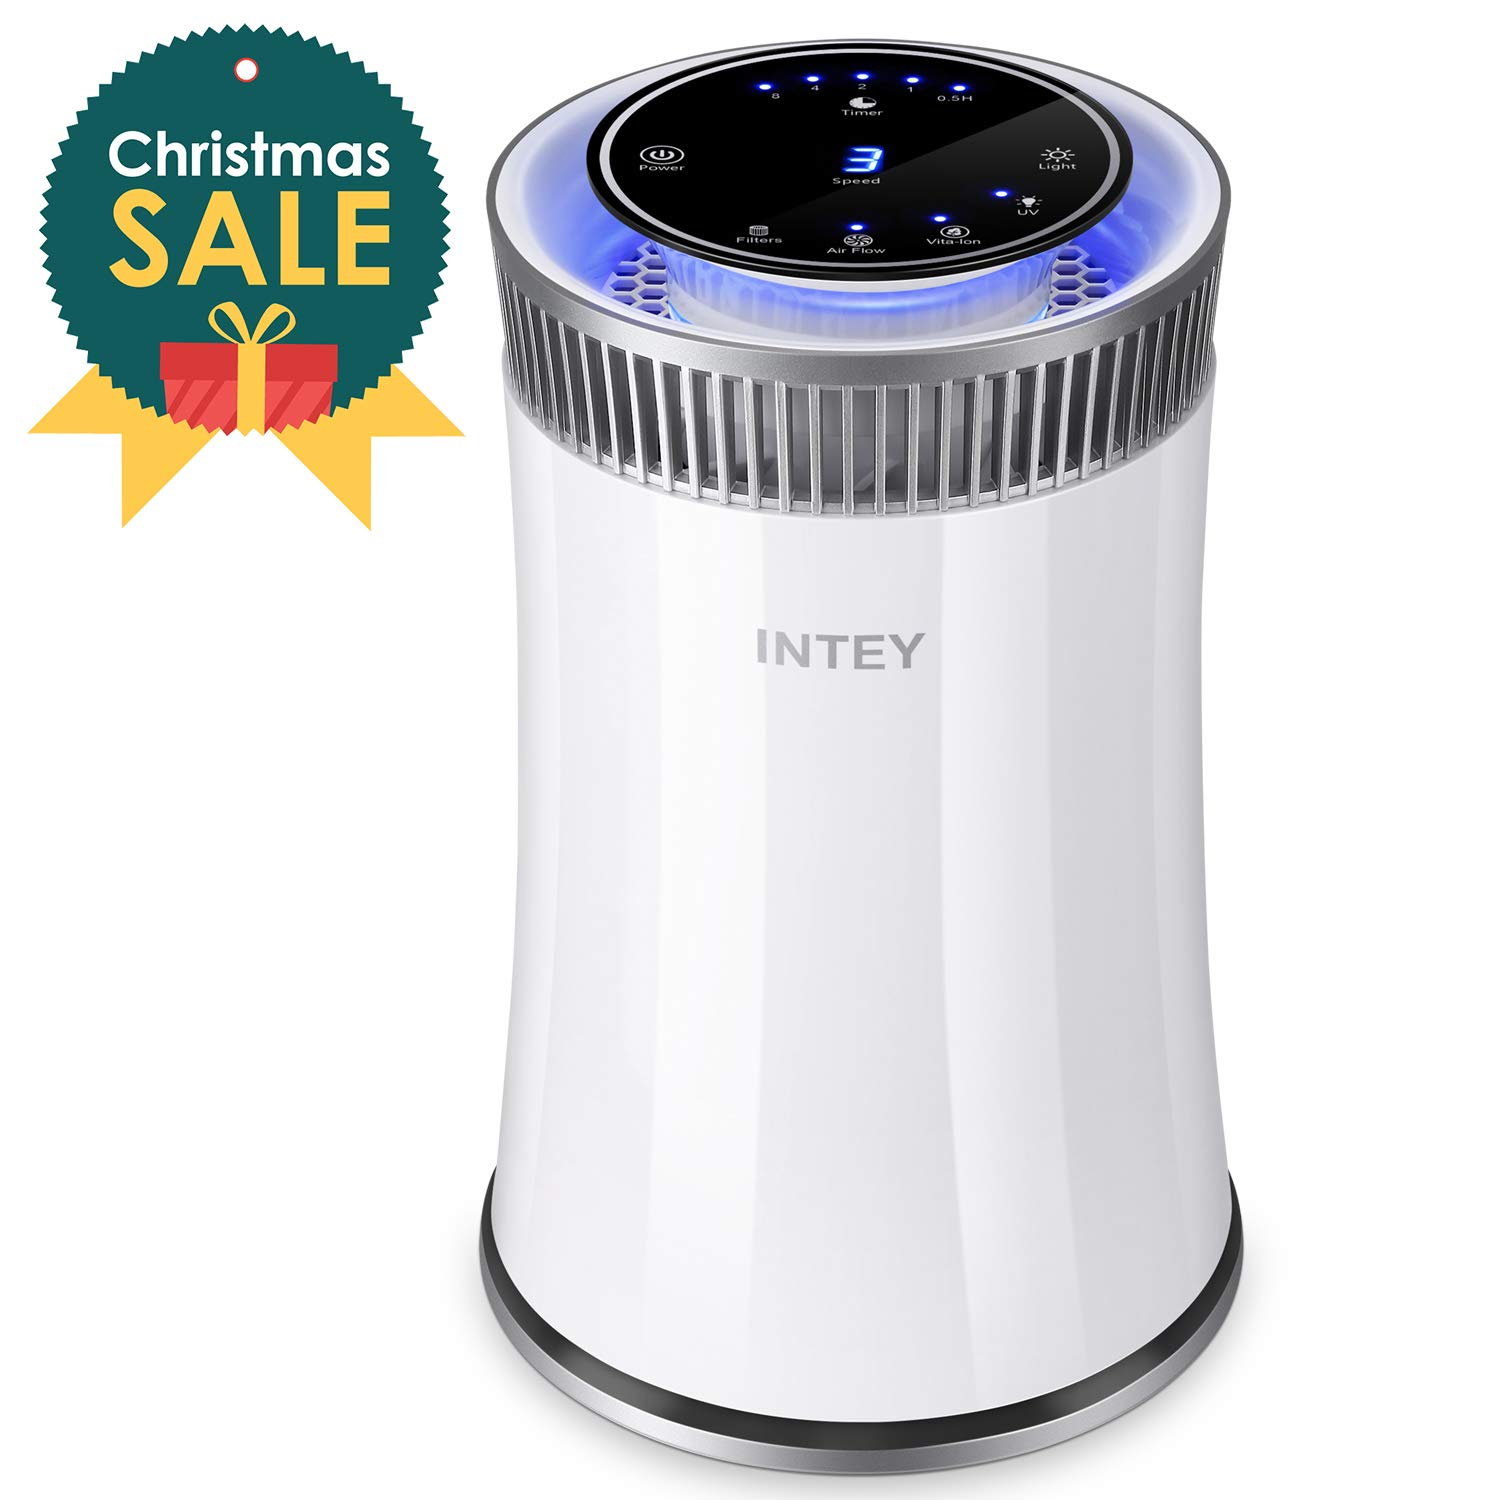 INTEY Hepa Air Purifier - No Ozone,True HEPA &Active Carbon Filters, 8H Timer, Air Purifiers for Allergies/Smoke - Removes 99.97% Dust, Pollen, Pet Dander (322 sq.ft/ 30 m² , CADR Rated 140+) Pet Dander (322 sq.ft/ 30 m²